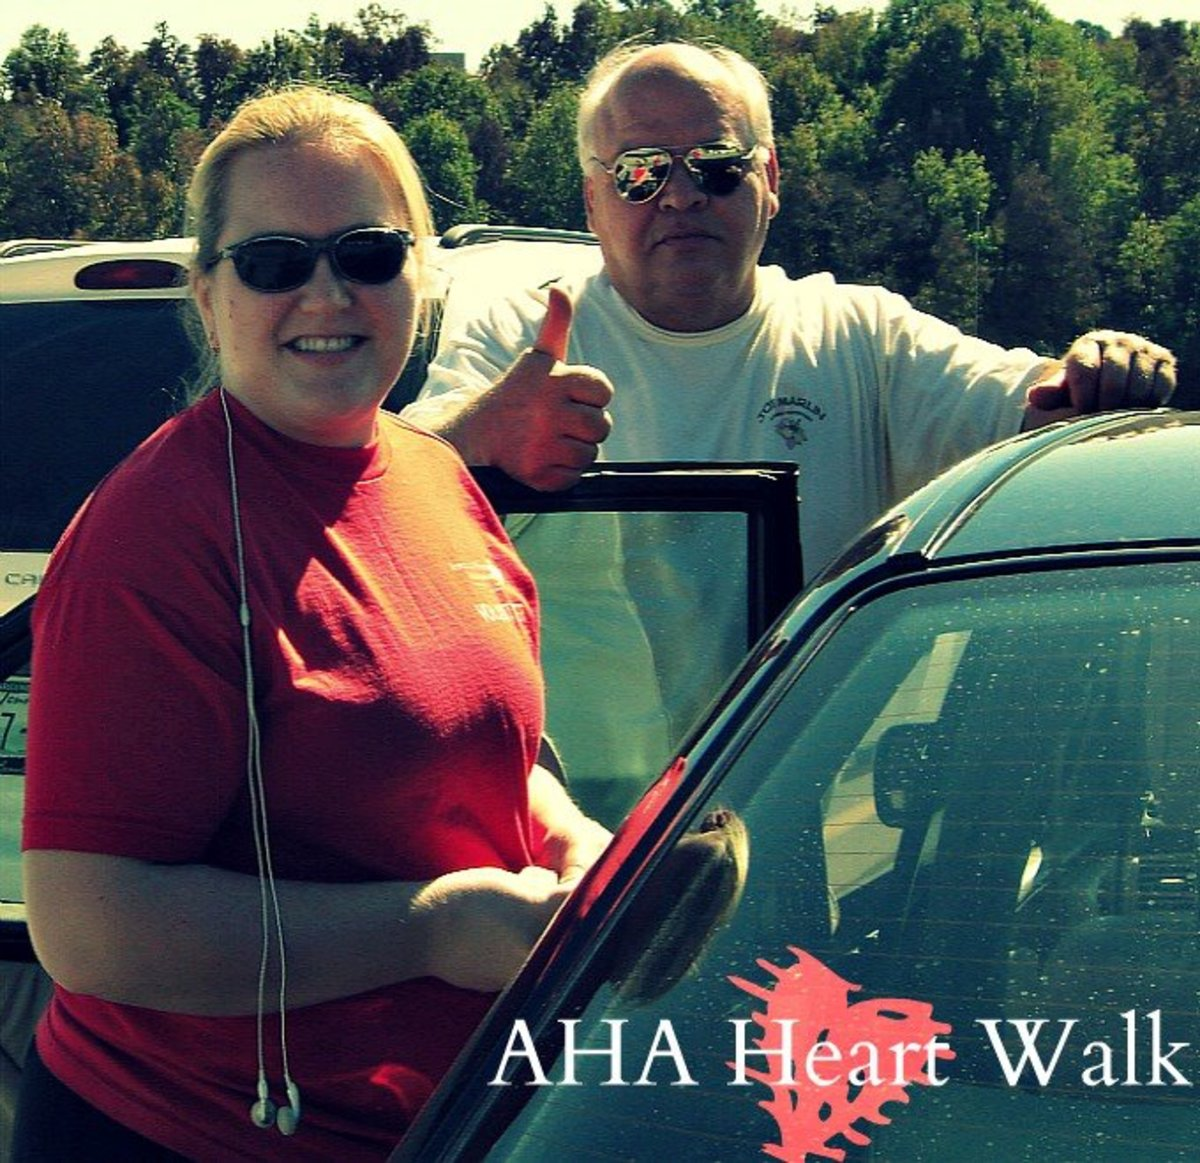 This is a photo of my dad and I at our first AHA Heart Walk.